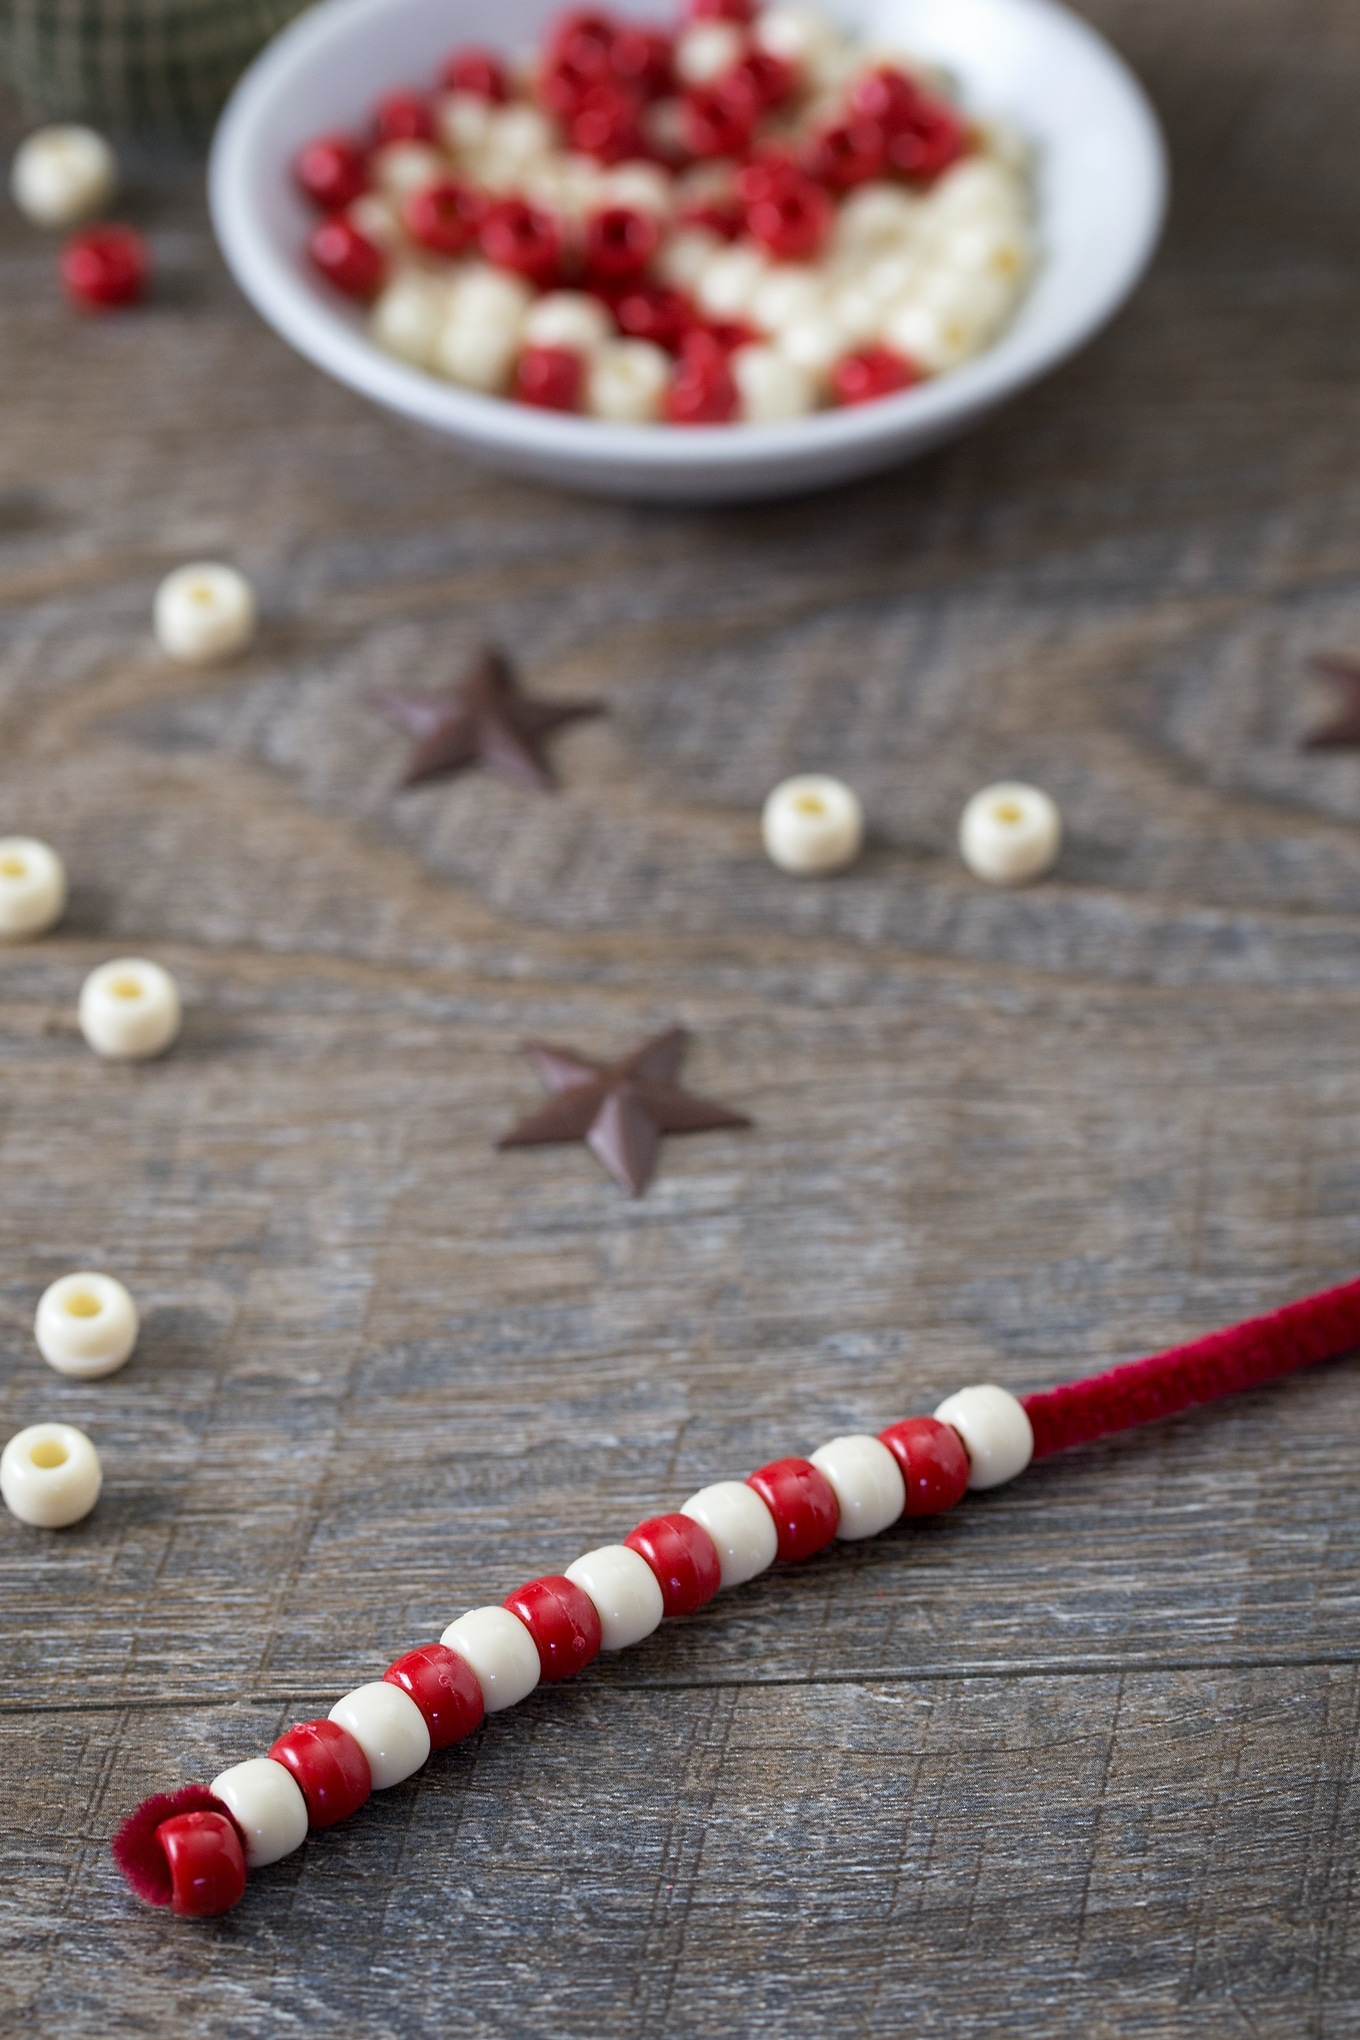 Candy Cane Ornaments In-Process